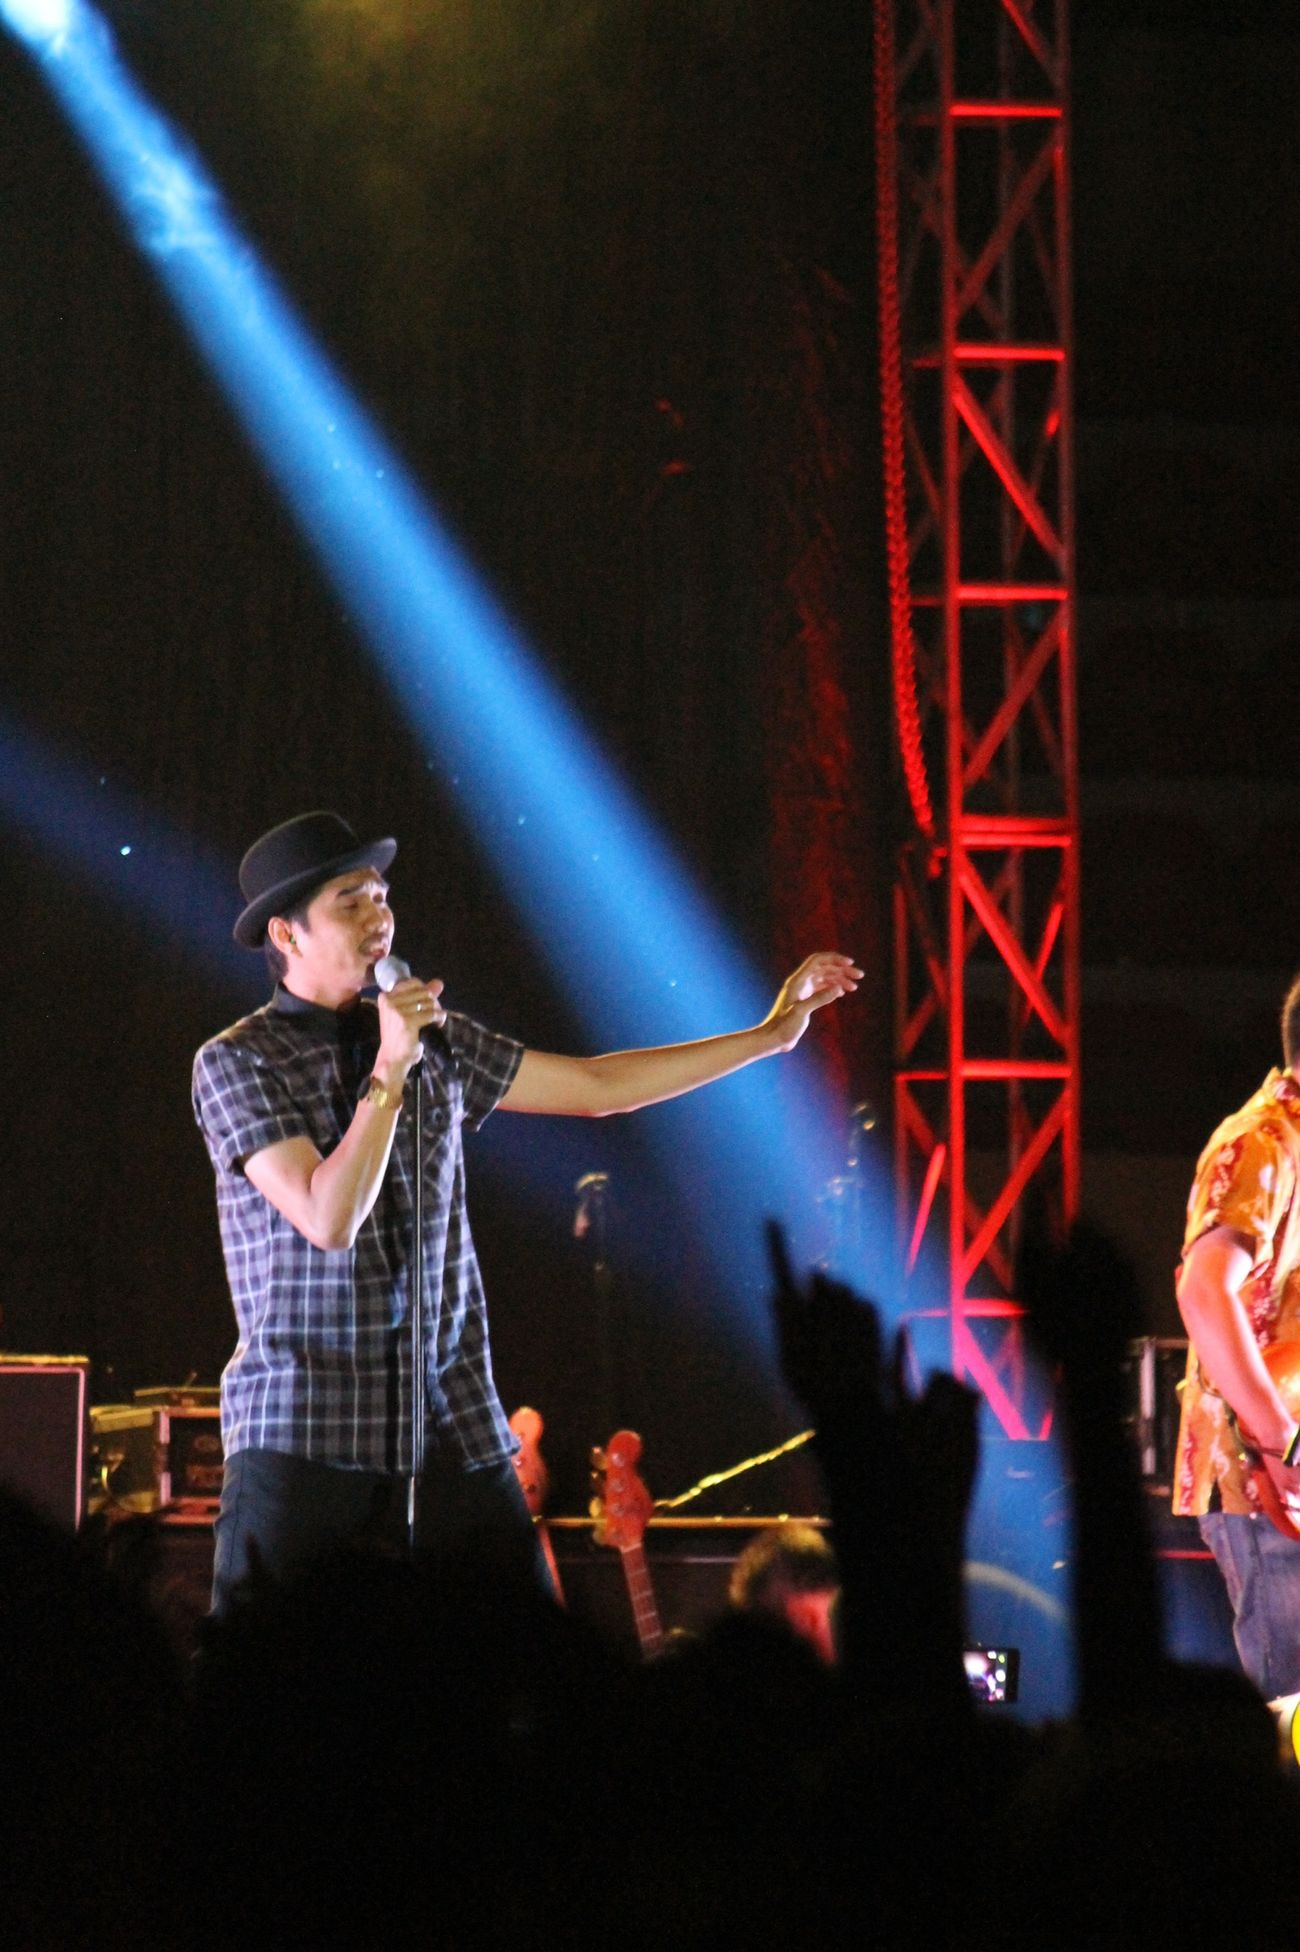 Sheila on 7 @farmasicup2014 GOR UNY 13 Desember 2013 Latepost Monochrome Farmasi Cup Yogyakarta, Indonesia Enjoying A Concert